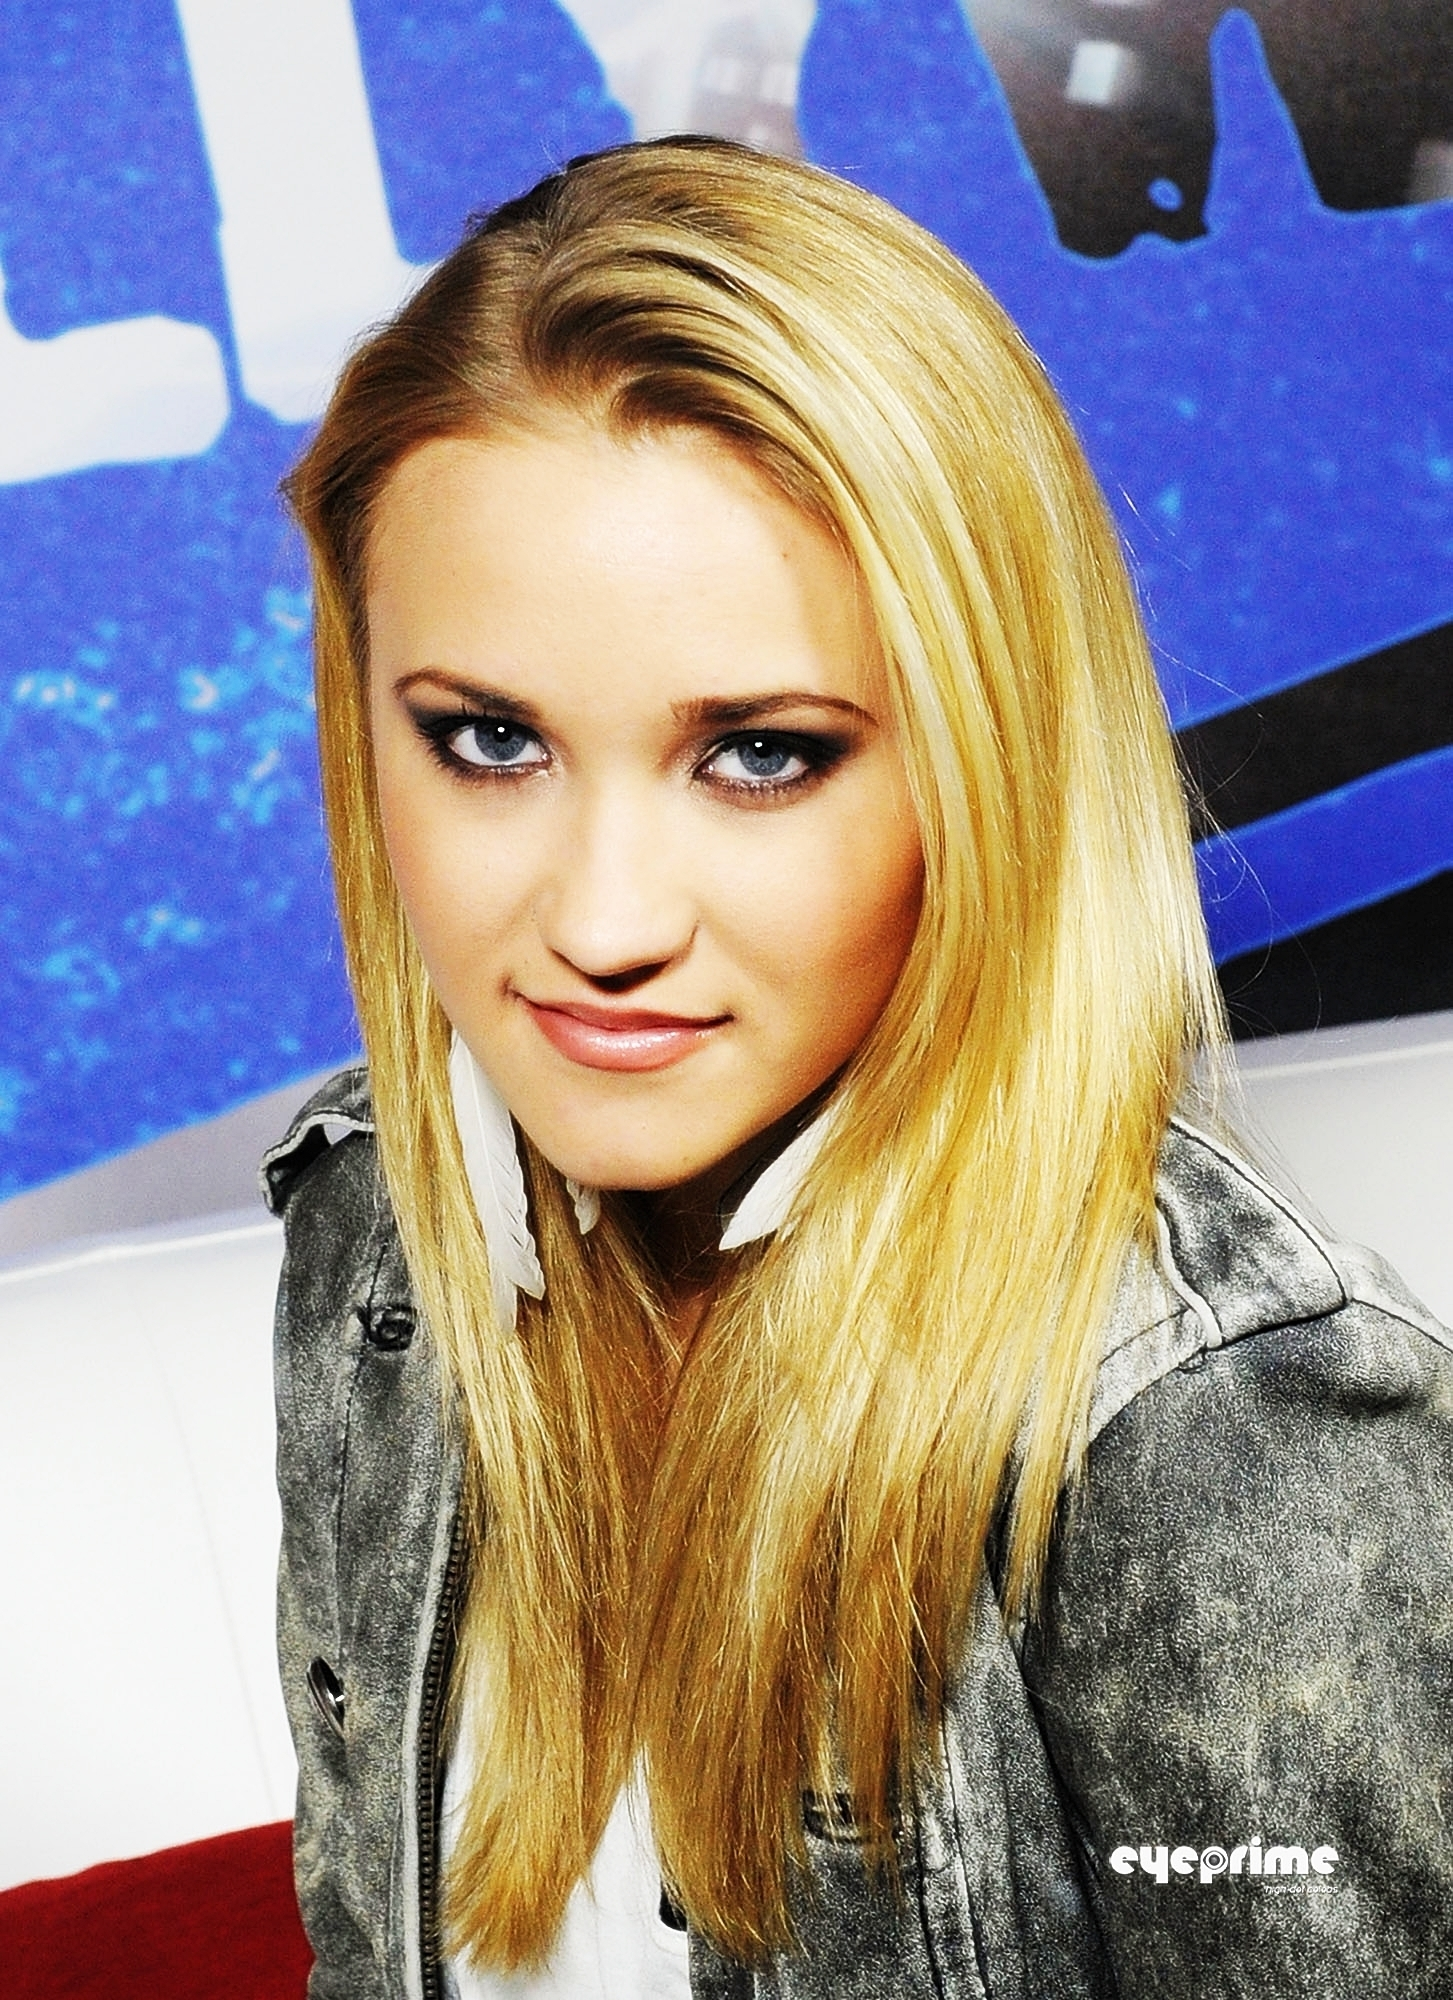 Emily Osment - Two and a Half Men Wiki